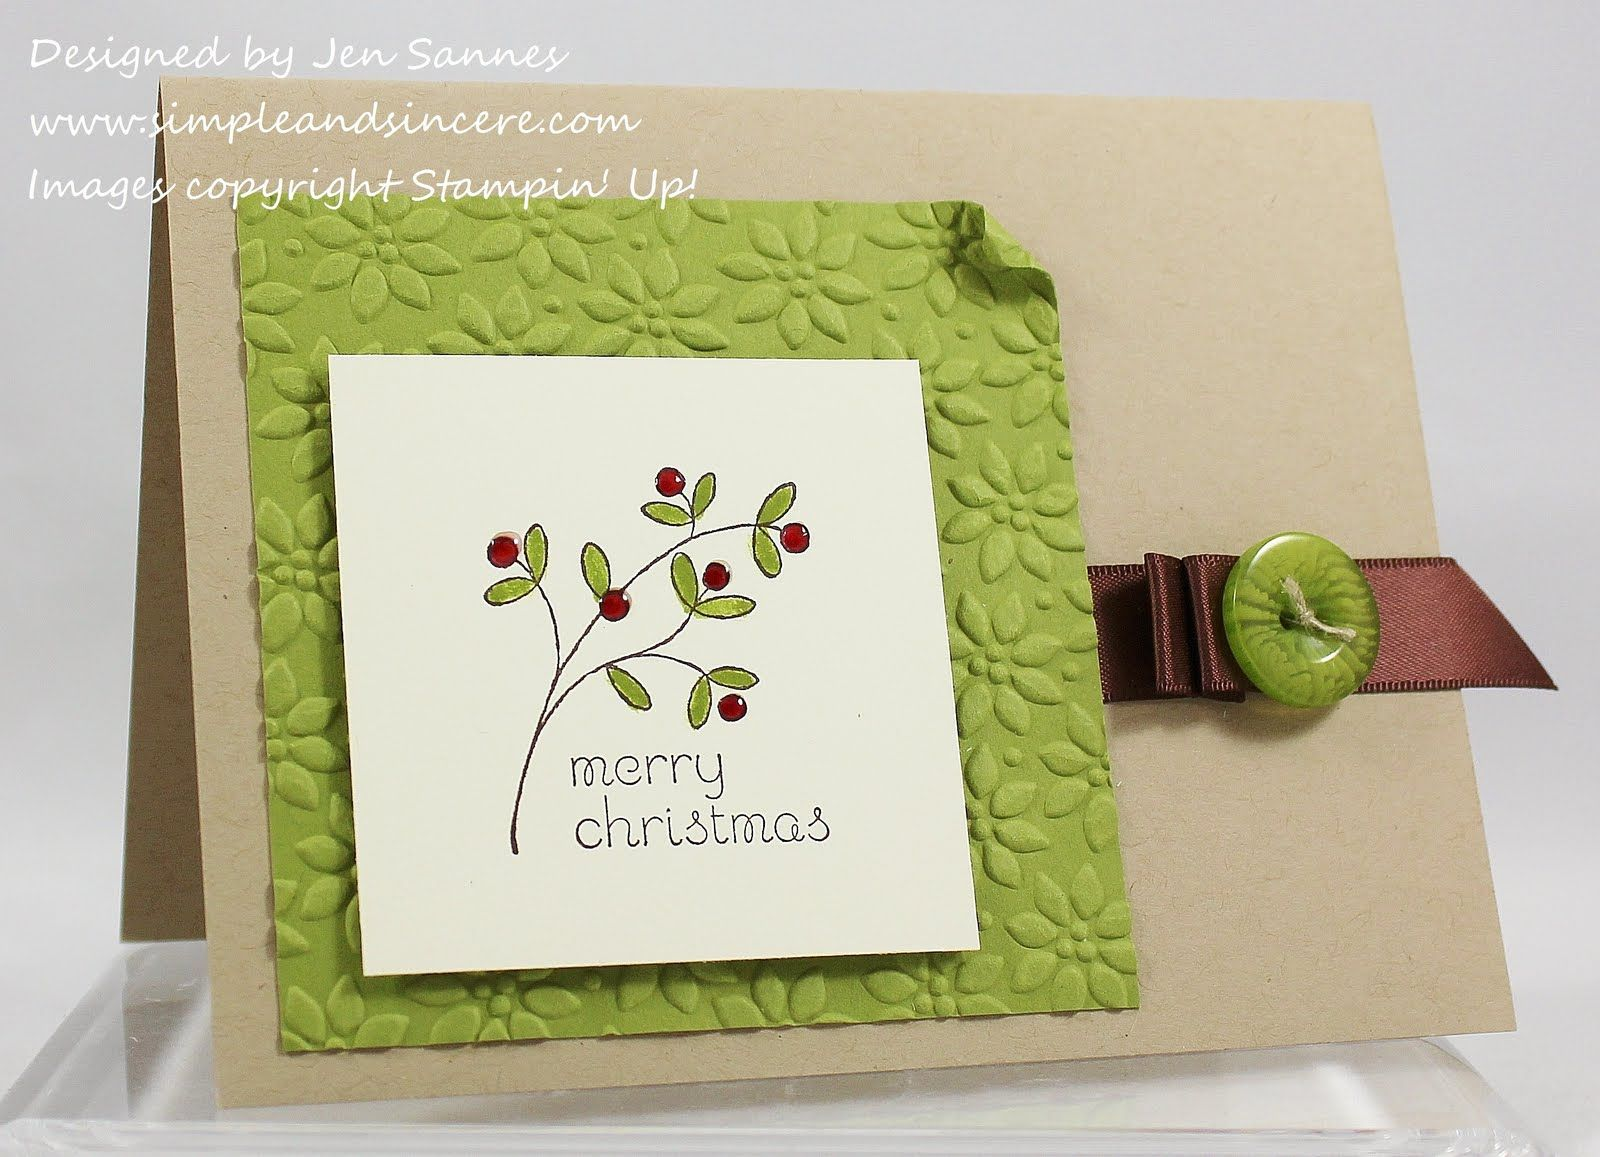 Simple u sincere easy events merry christmas stampin up cards